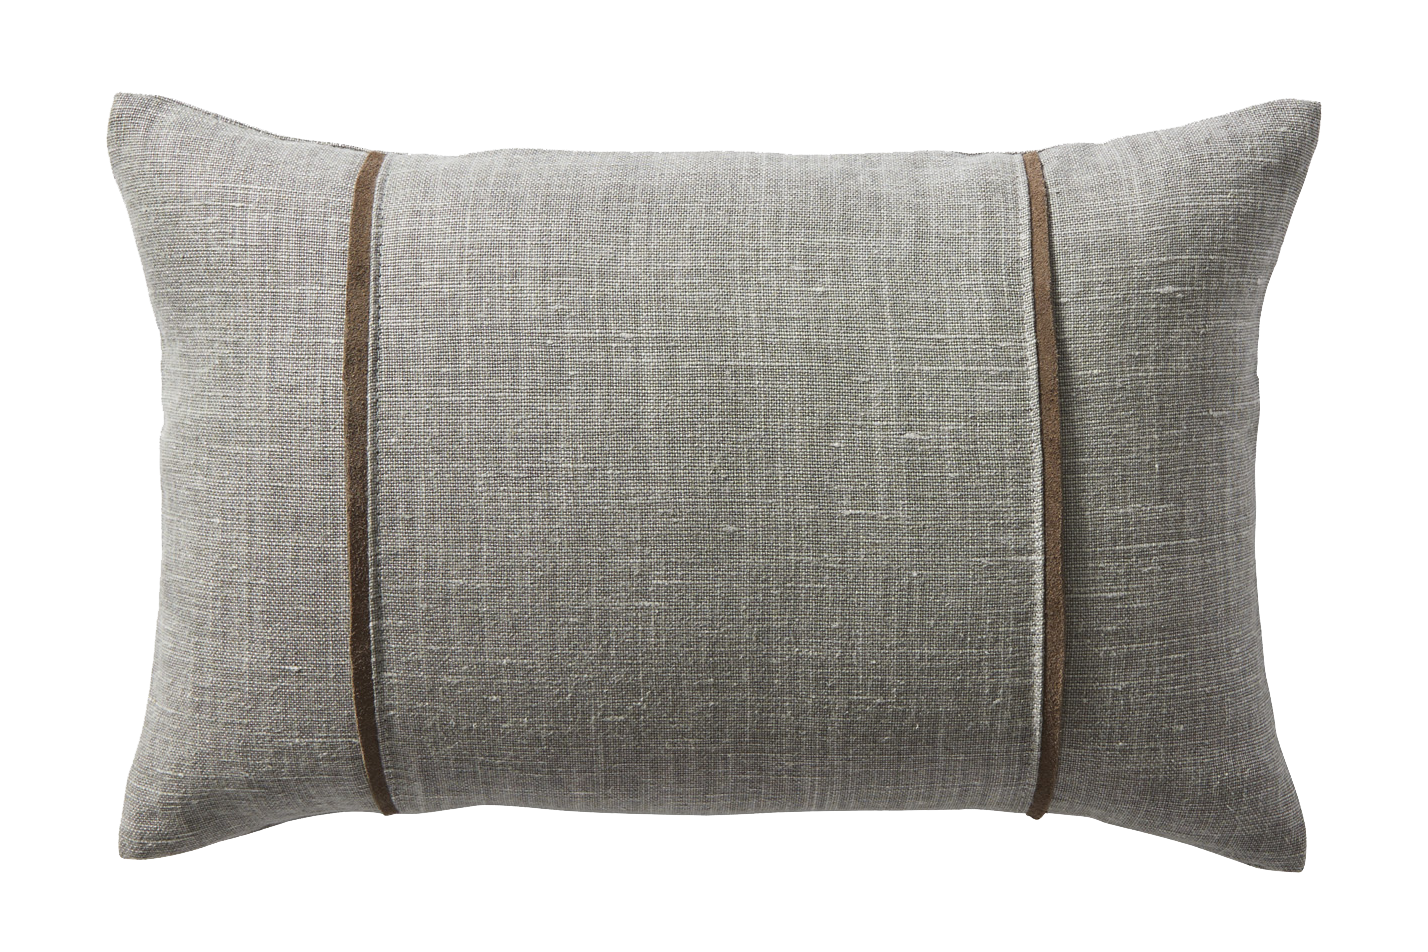 Dec_Pillow_Kentfield_12x18_Smoke_Front_MV_0344_Crop_SH copy.png